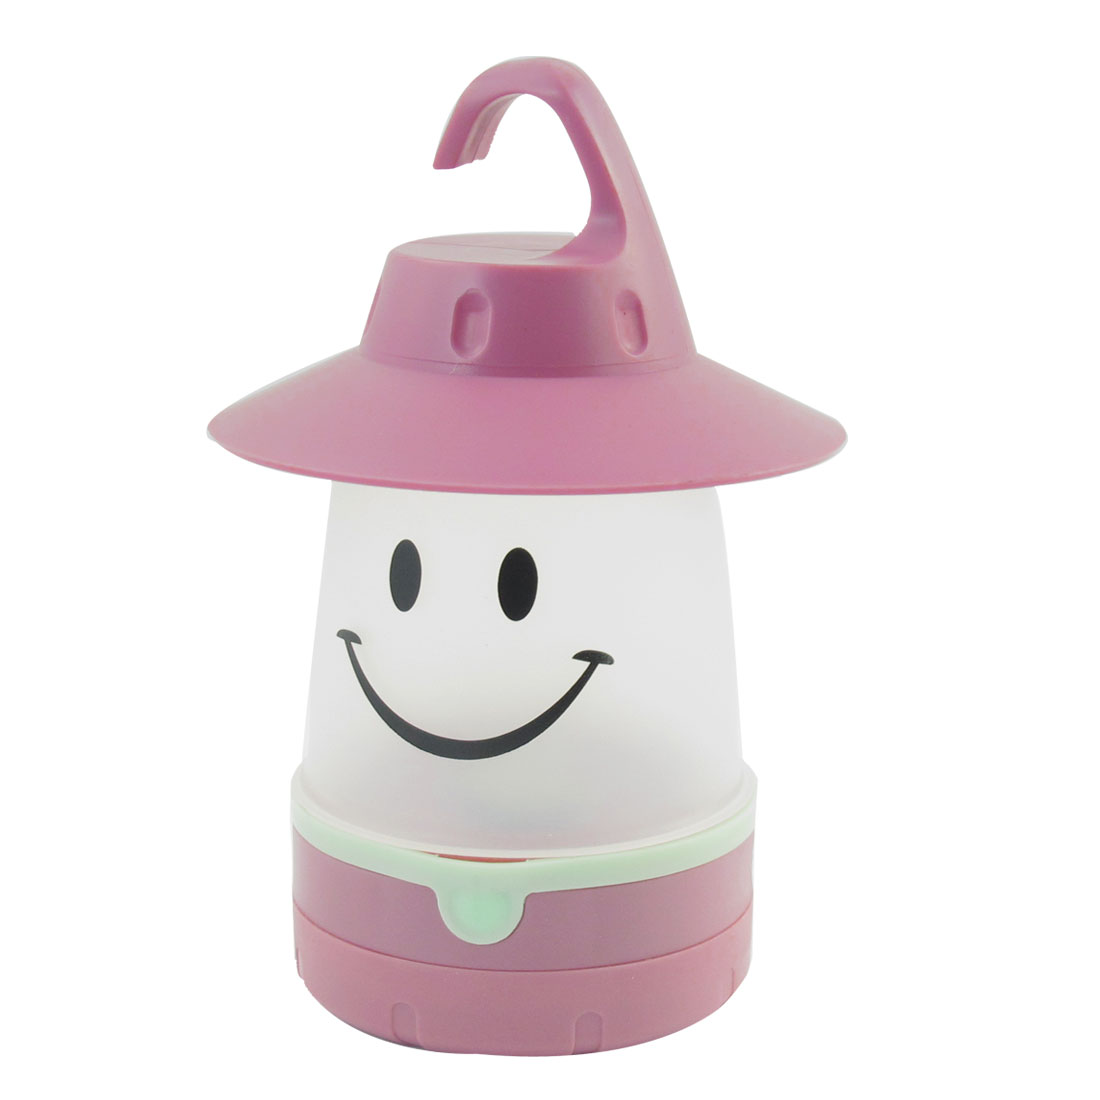 Rosy Brown Plastic Warm White Smile LED Lantern Night Camping Light